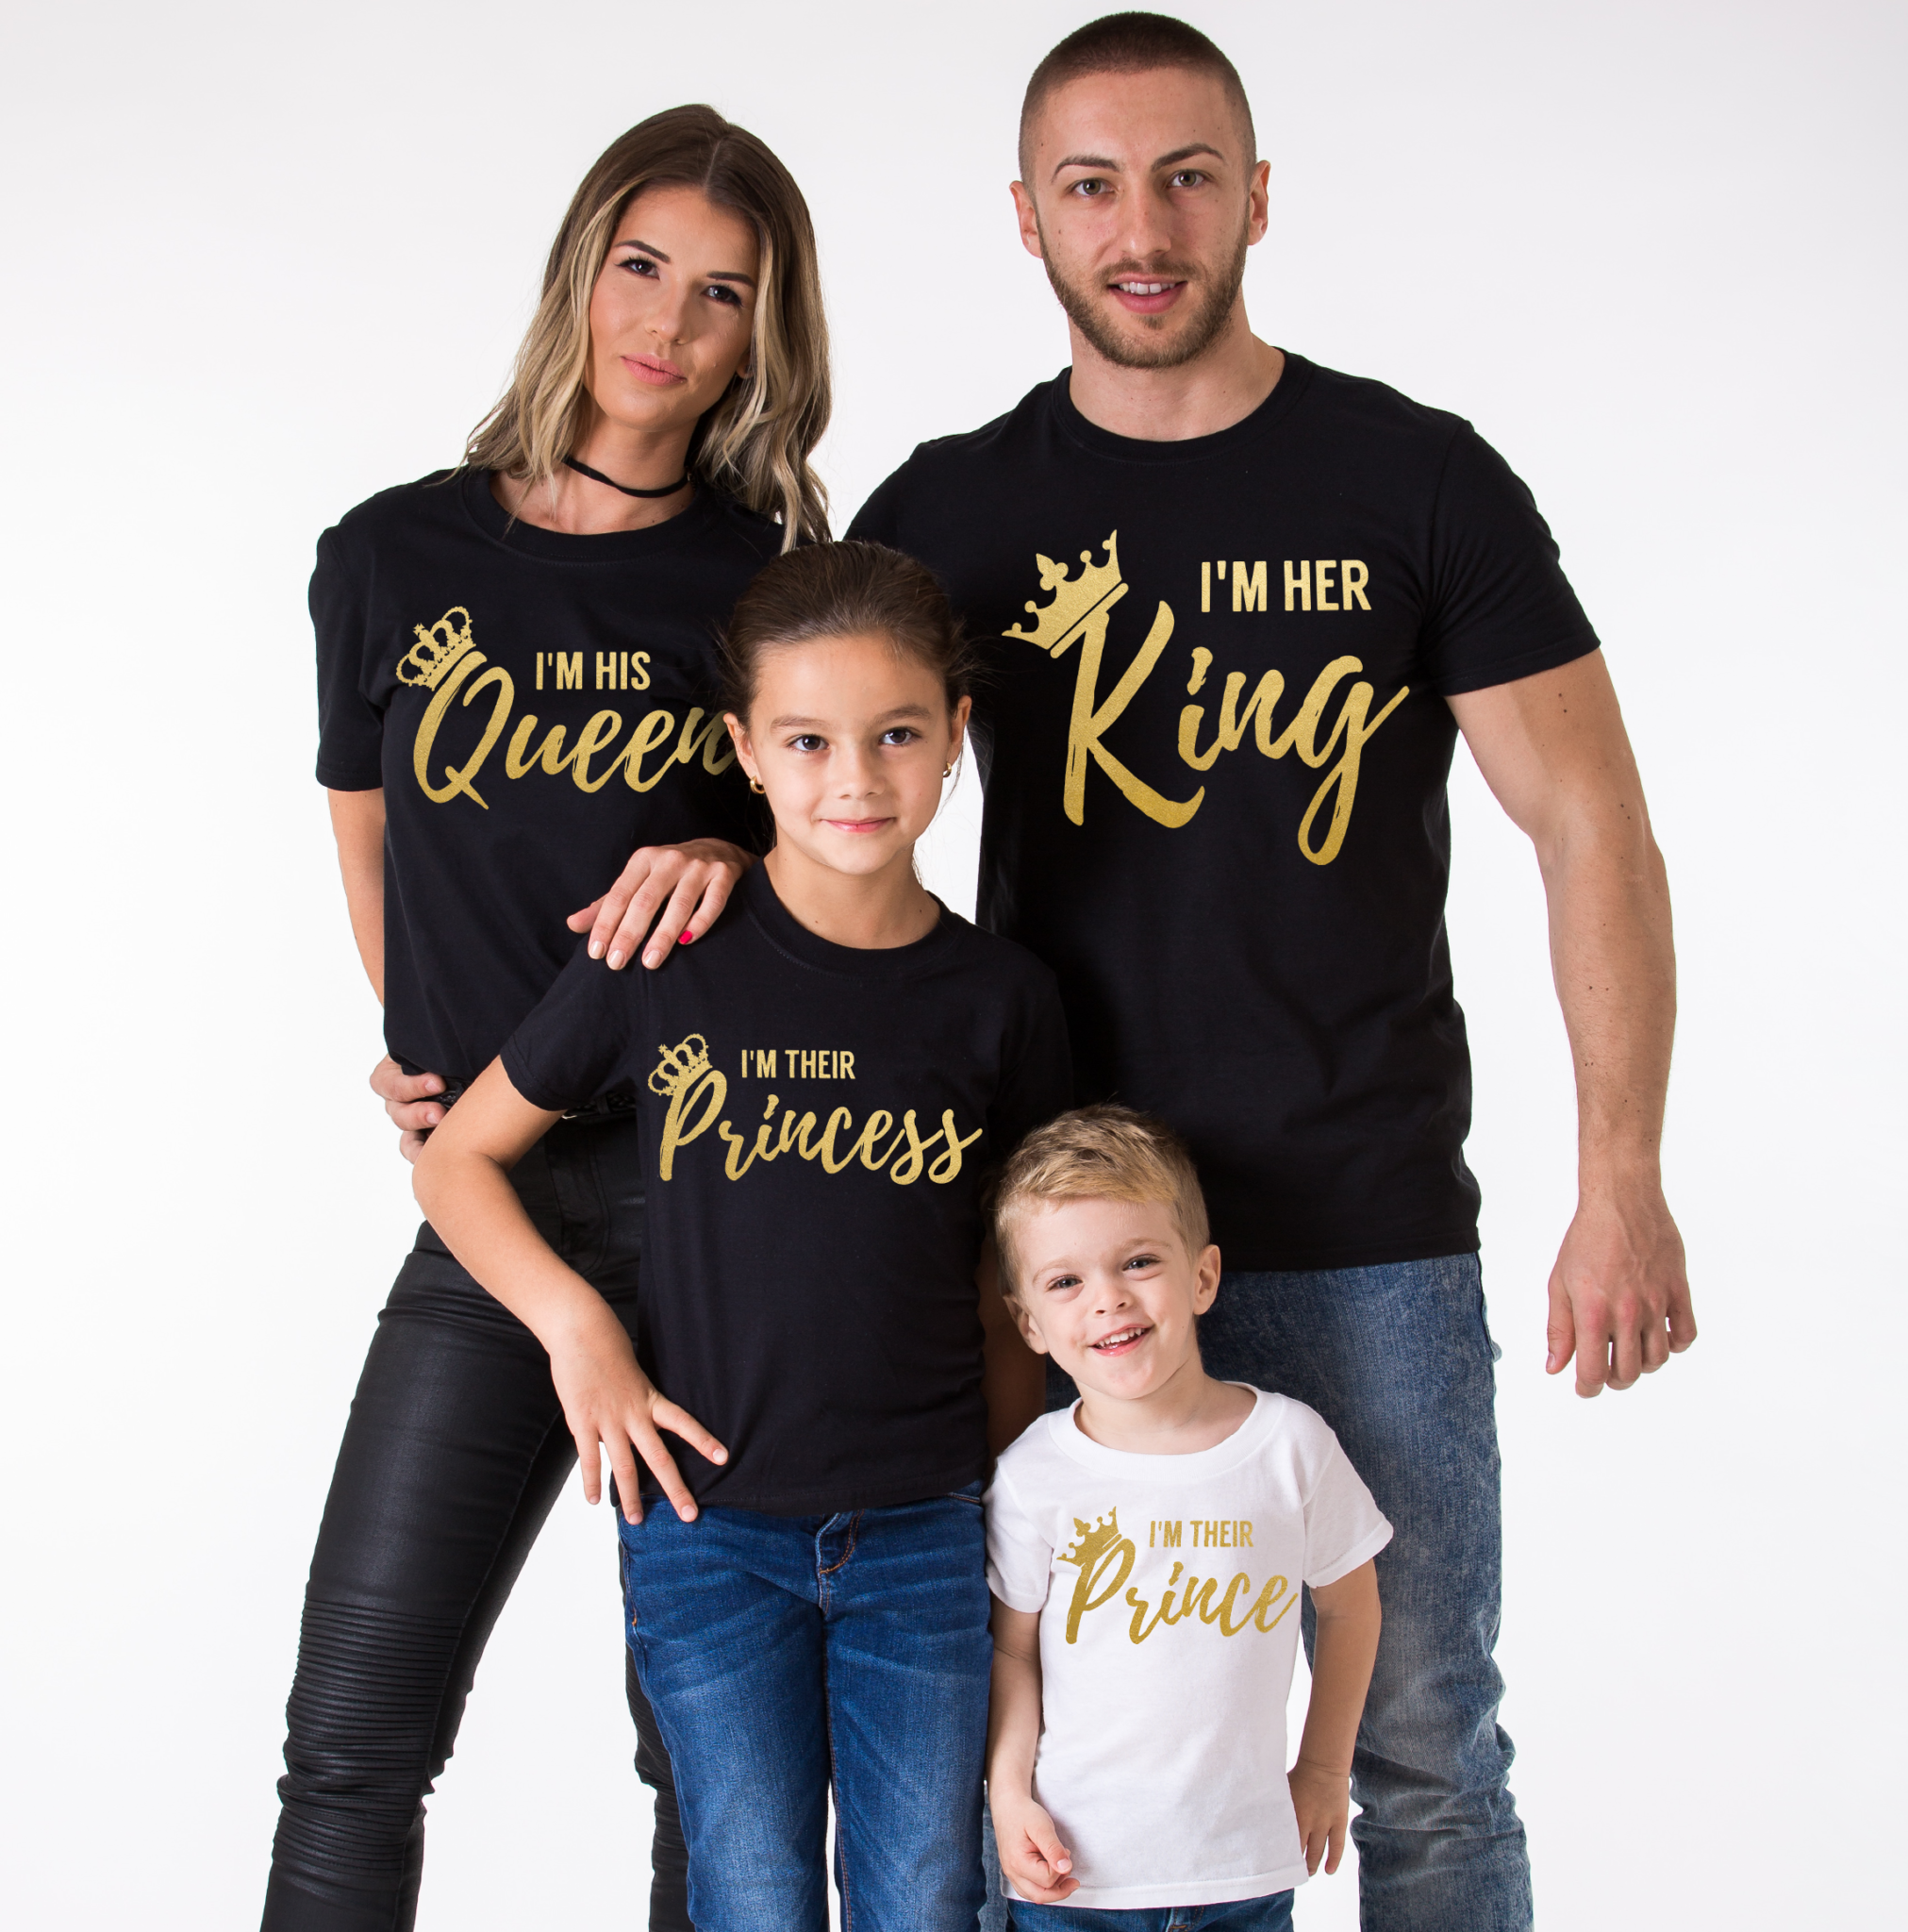 king queen family her king his queen their prince their princess. Black Bedroom Furniture Sets. Home Design Ideas